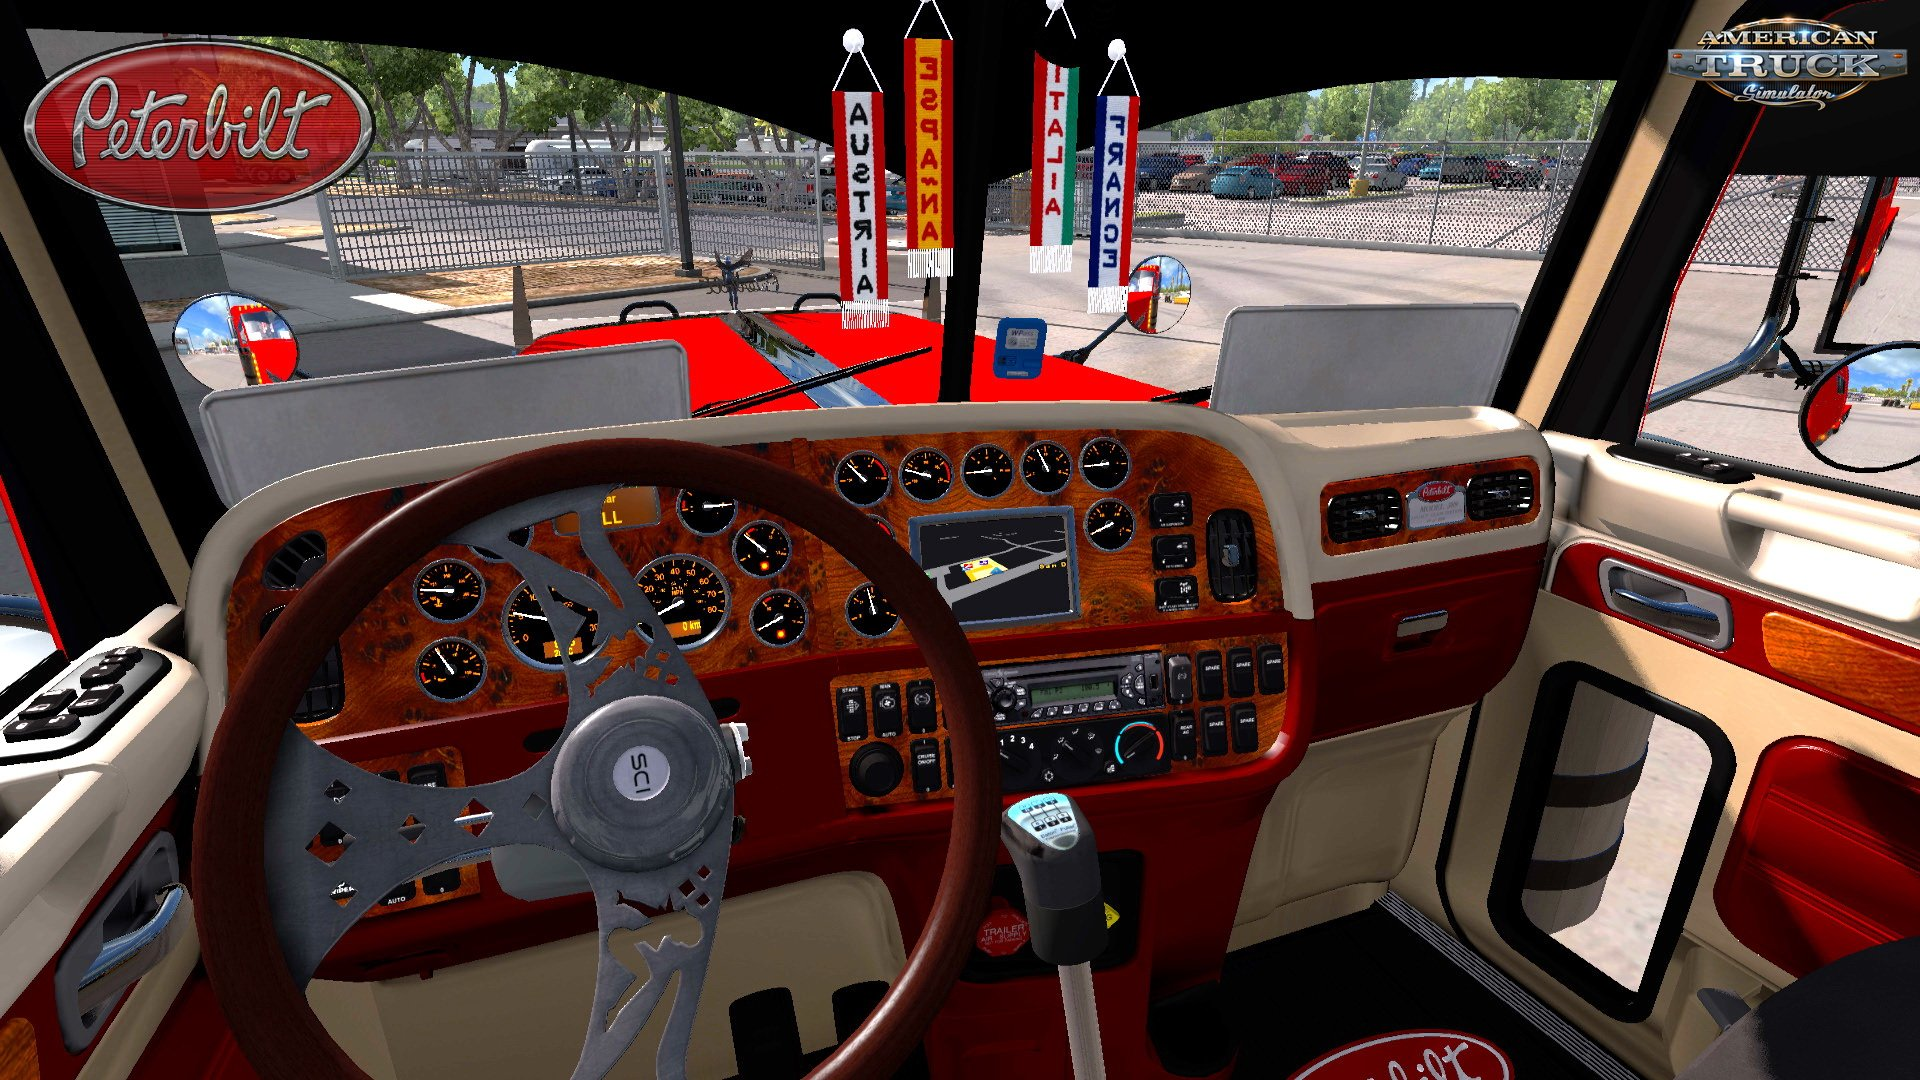 Modified peterbilt 389 interior v2 1 ats mods - Peterbilt 379 interior accessories ...